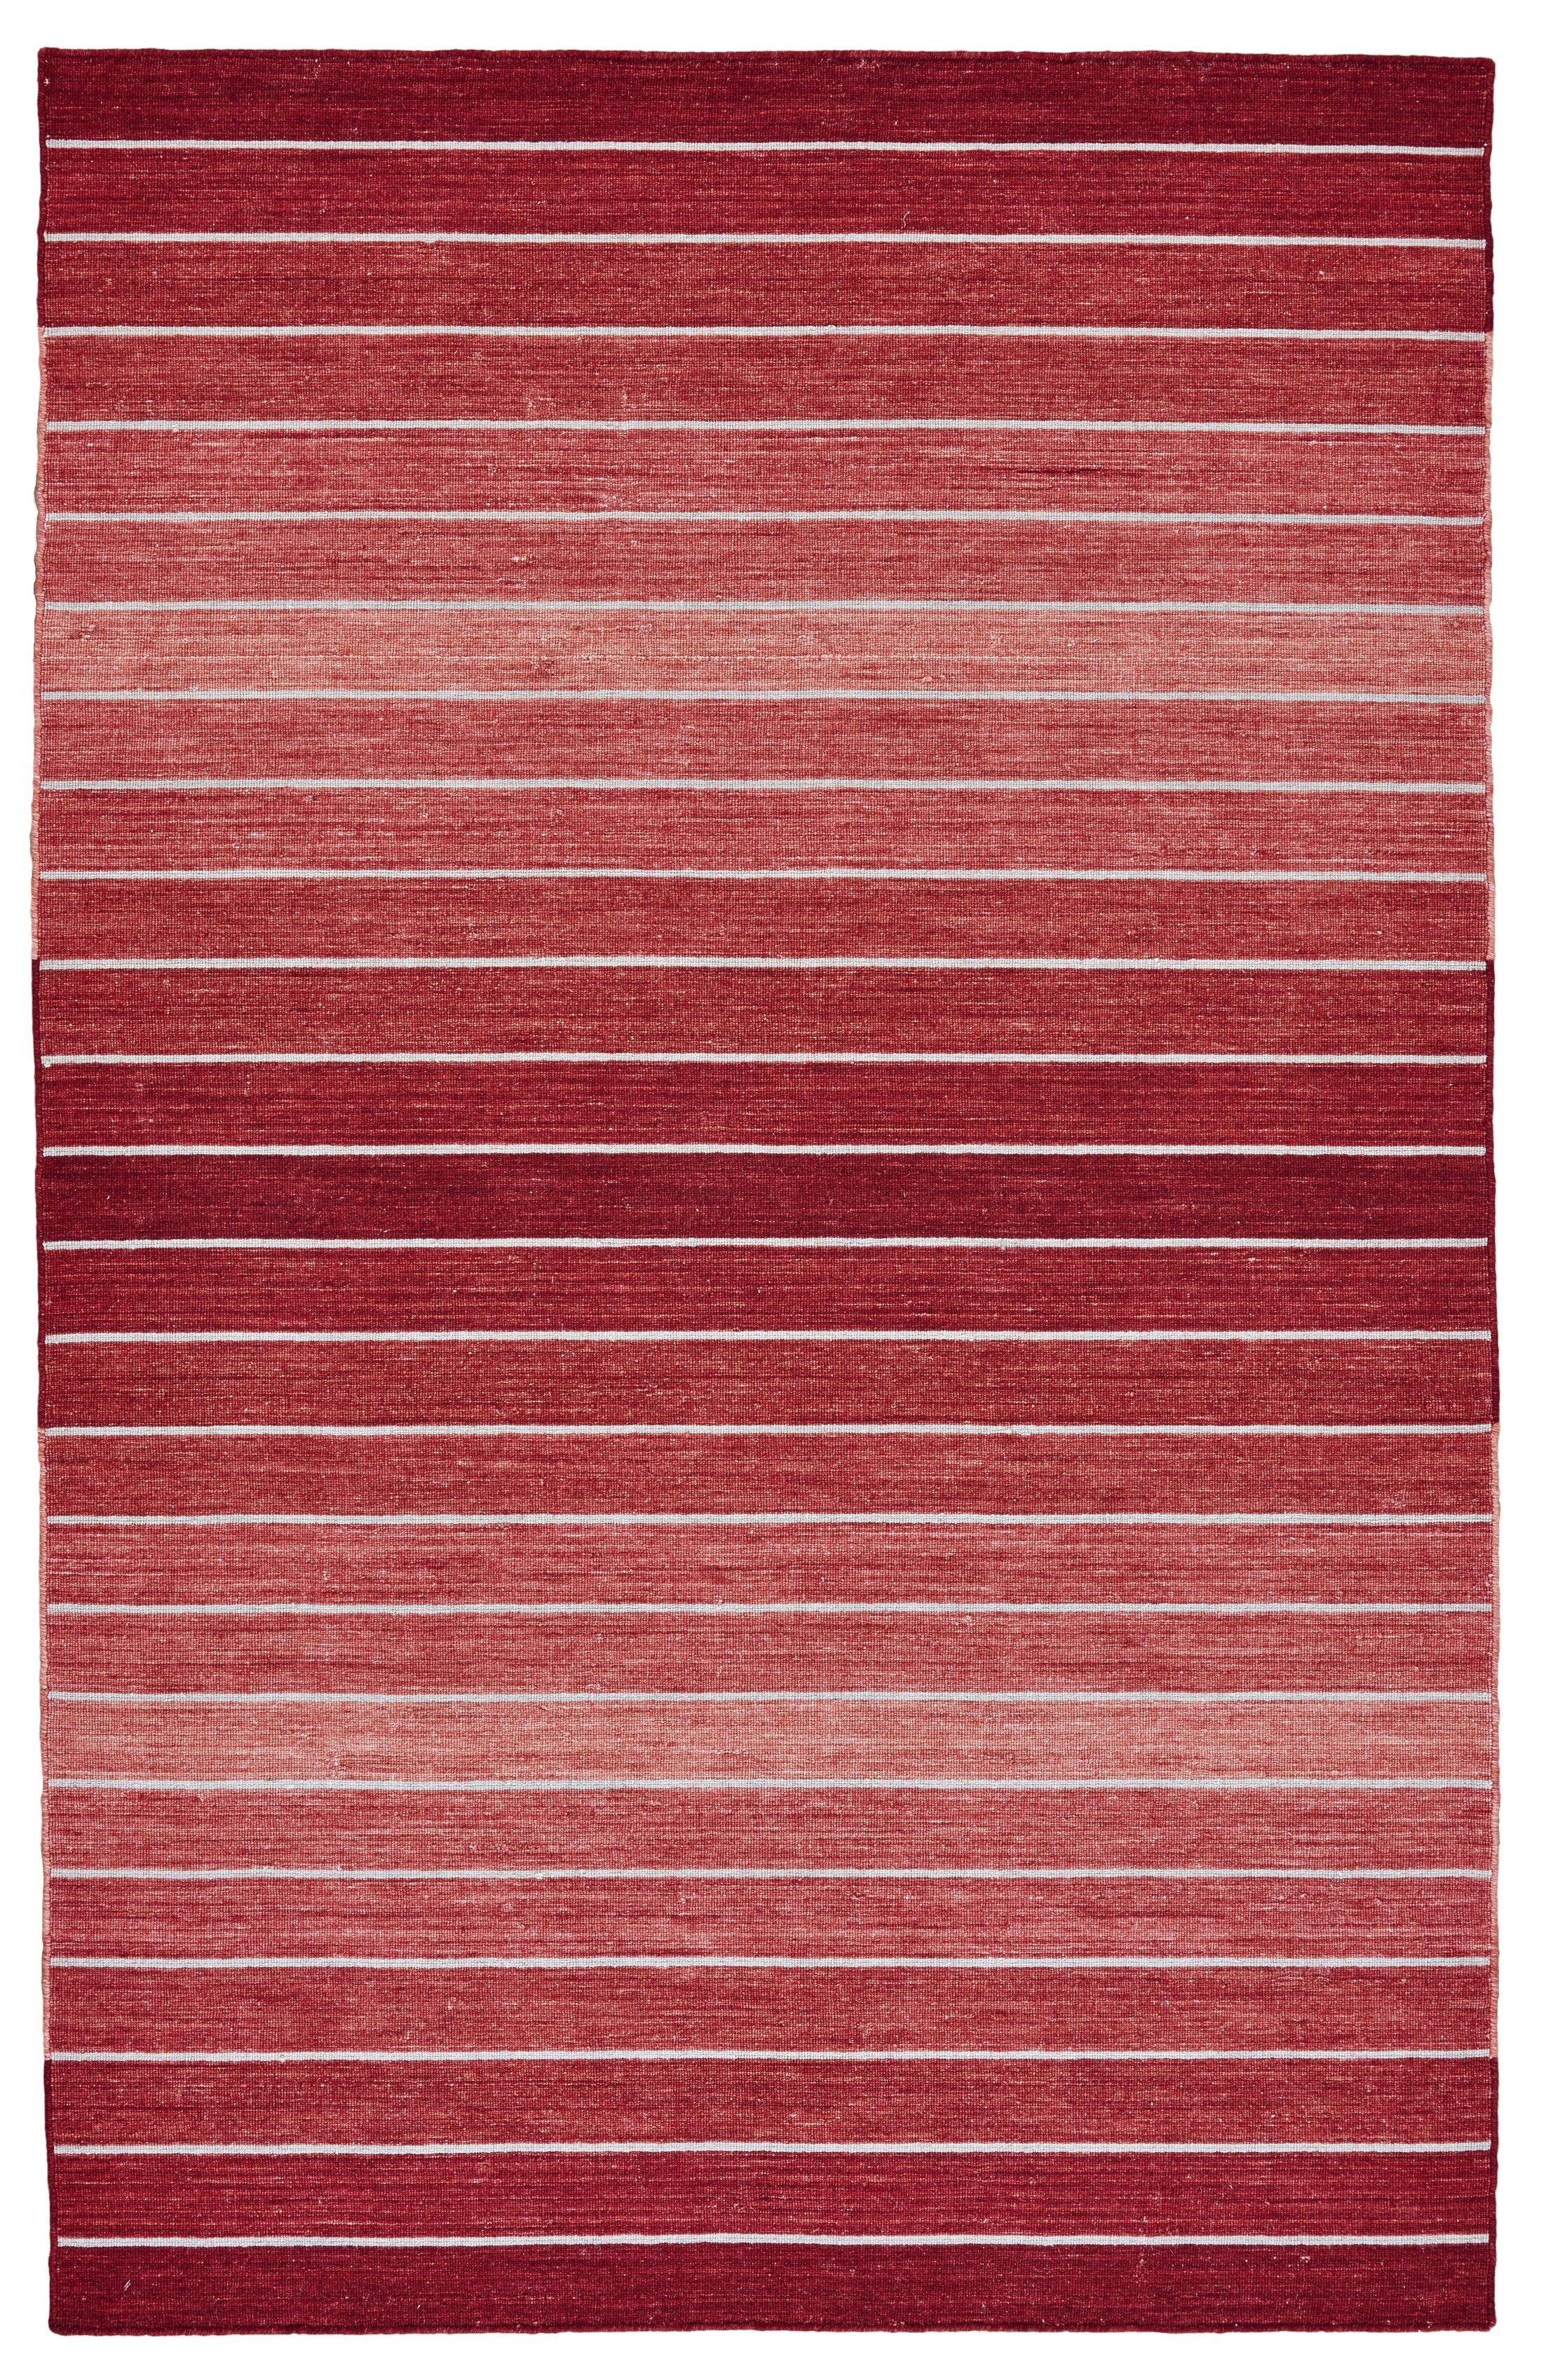 Mcdonald Hand-Loomed Red Area Rug Rug Size: Runner 2'6